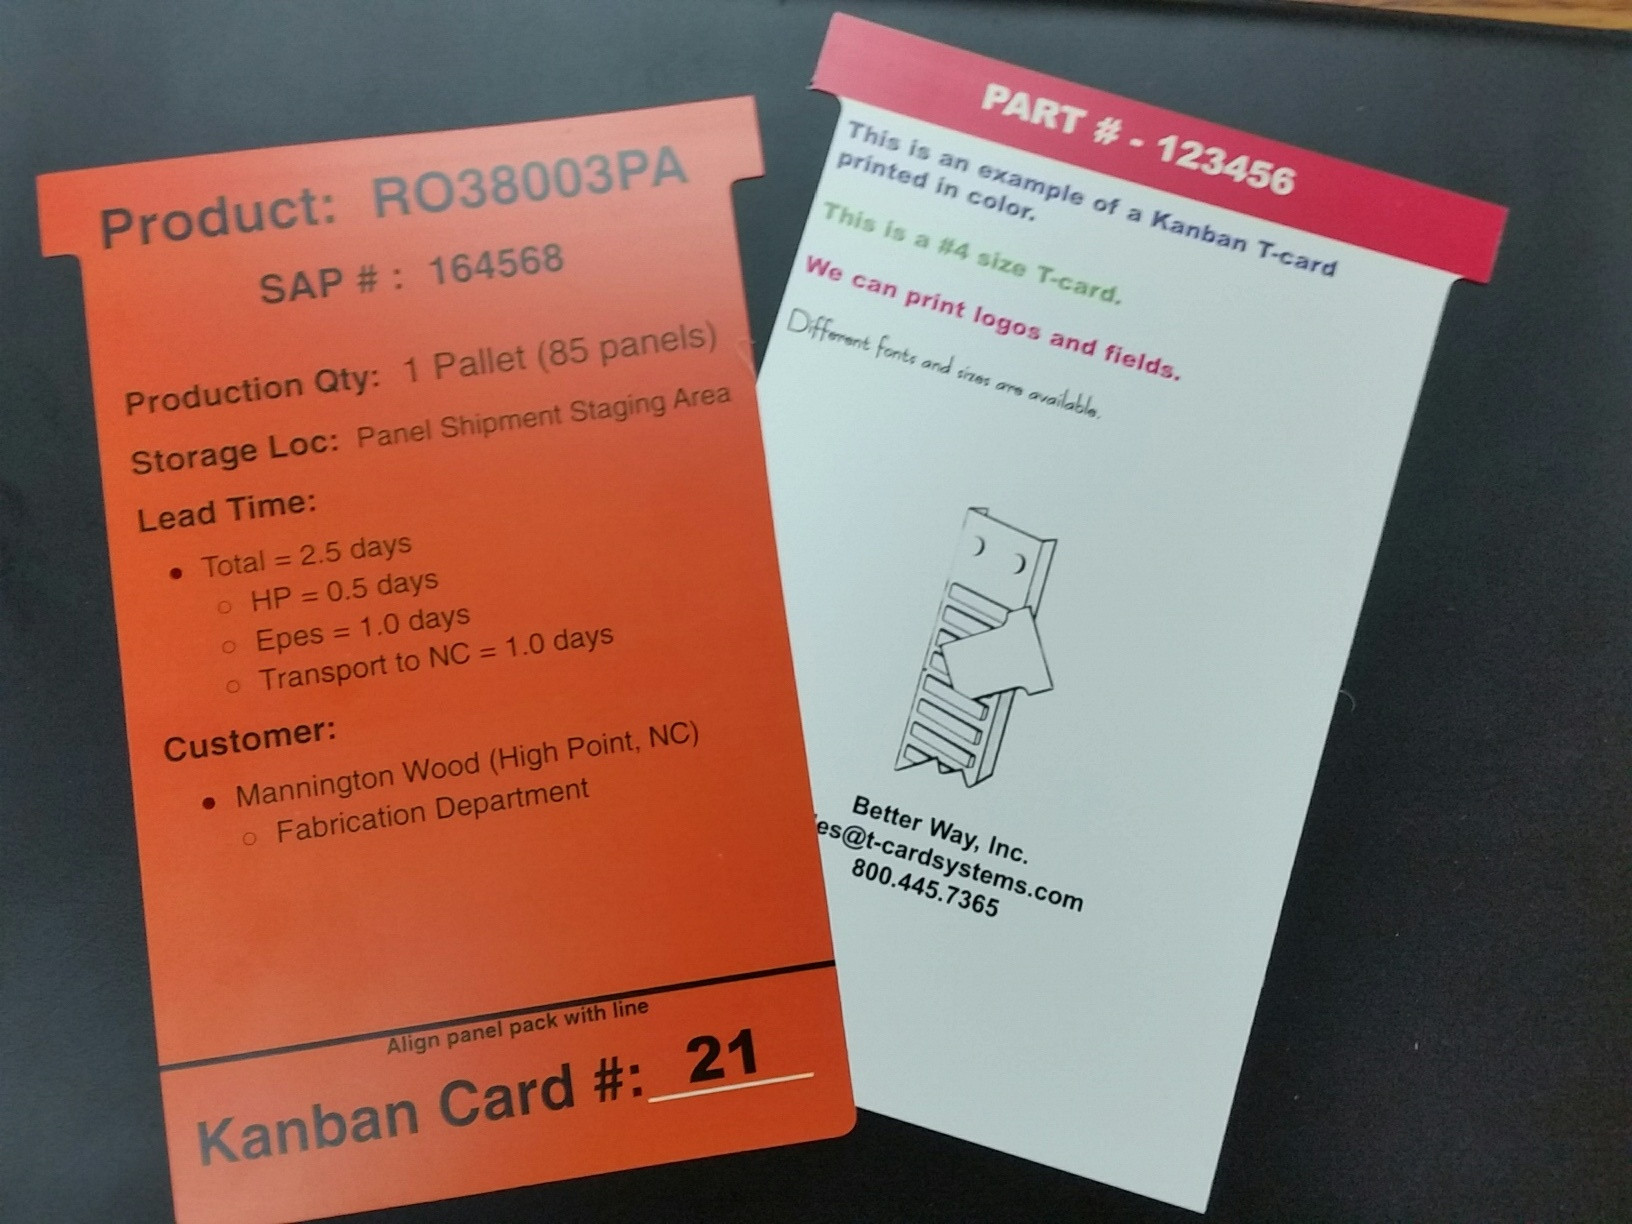 T-cards now available in synthetic paper.